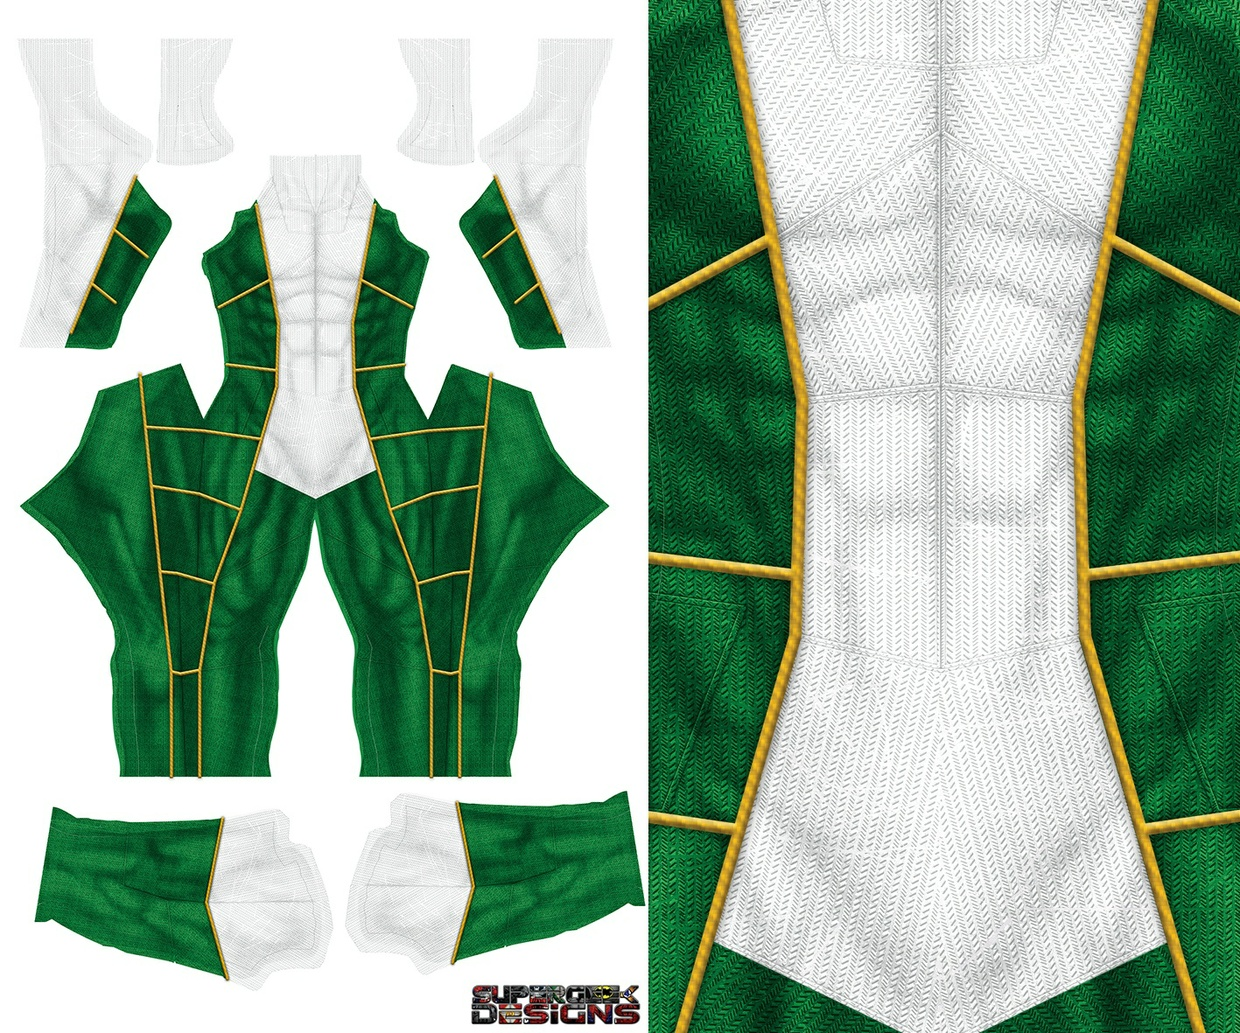 GREEN/WHITE HYBRID RANGER pattern file